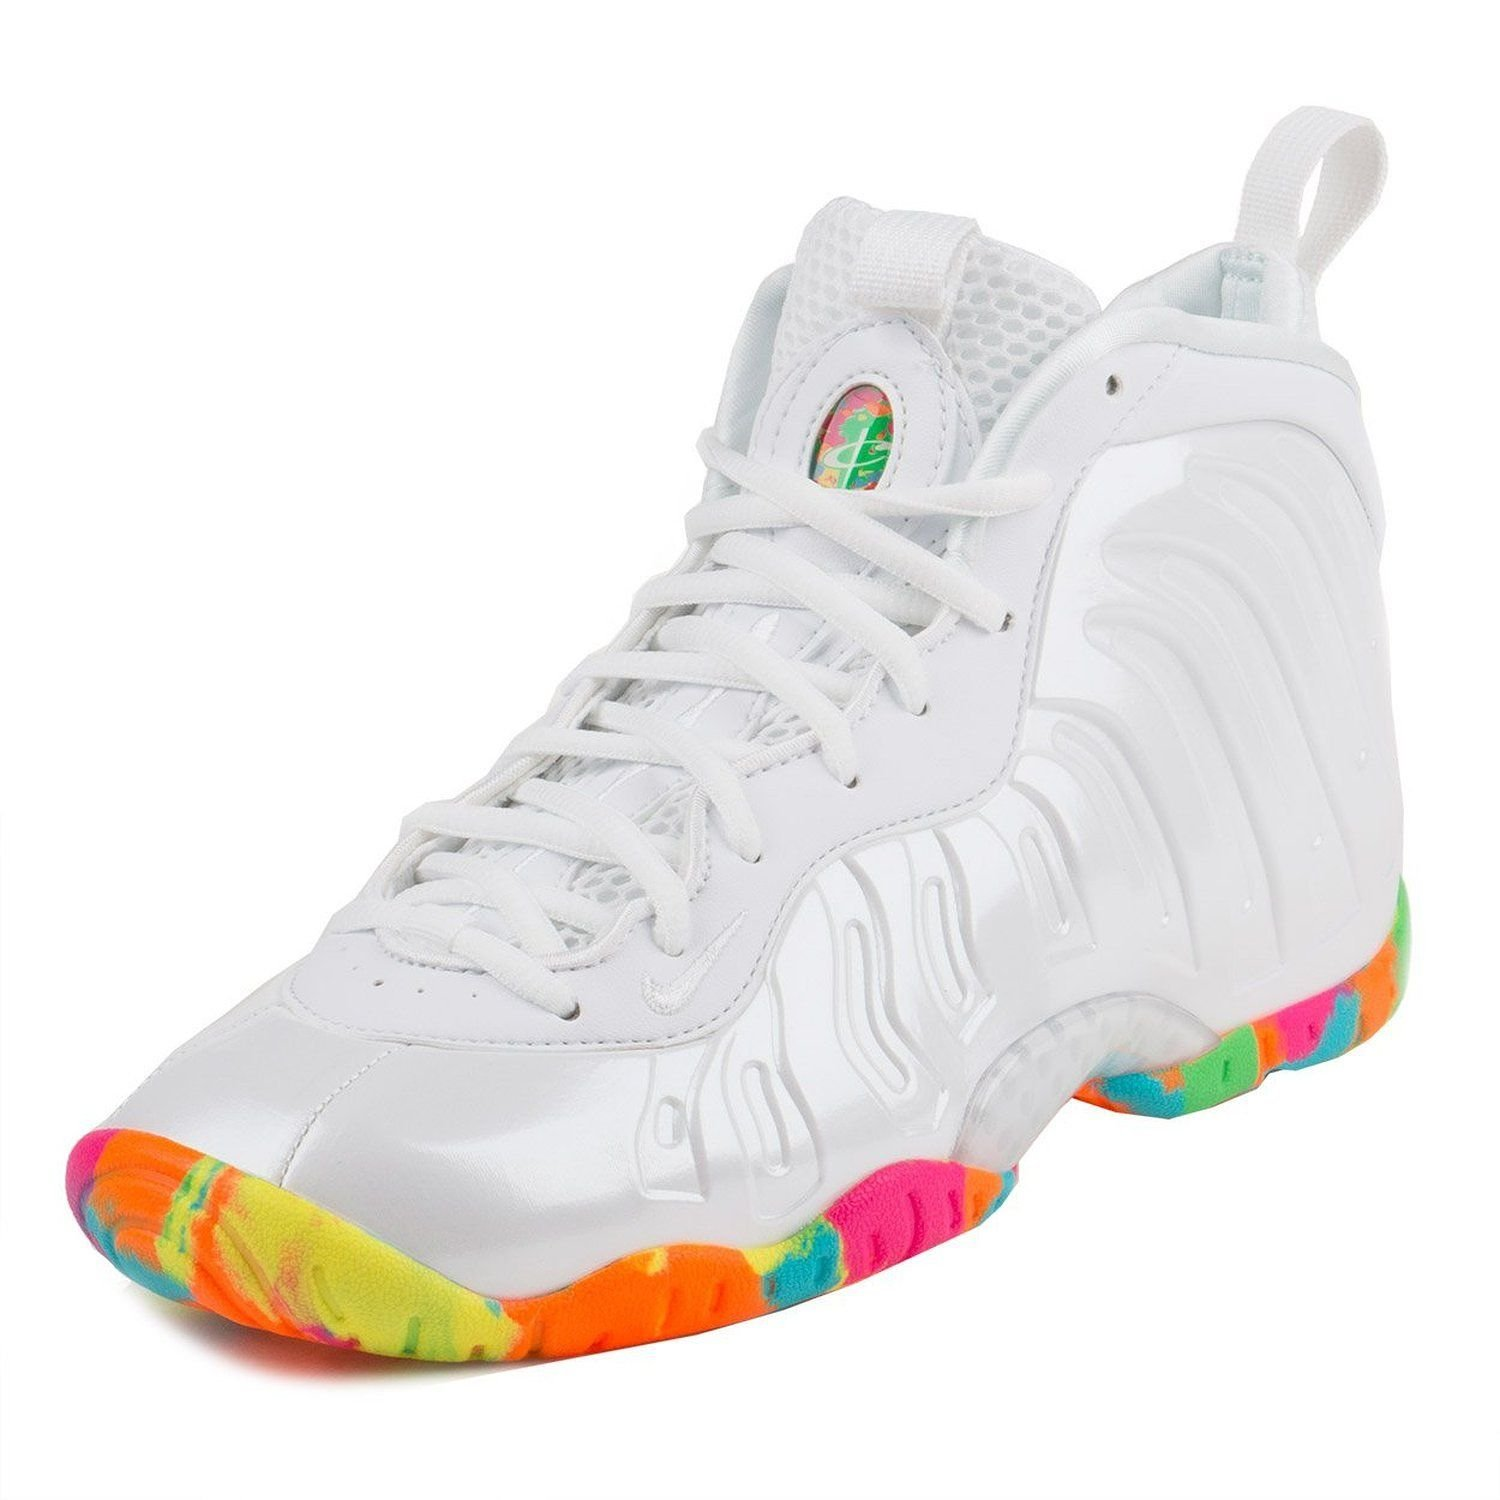 567856c36ad19 ... hot amazon nike foamposite little posite one fruity pebbles size 2 ps  basketball 0f247 ac40c